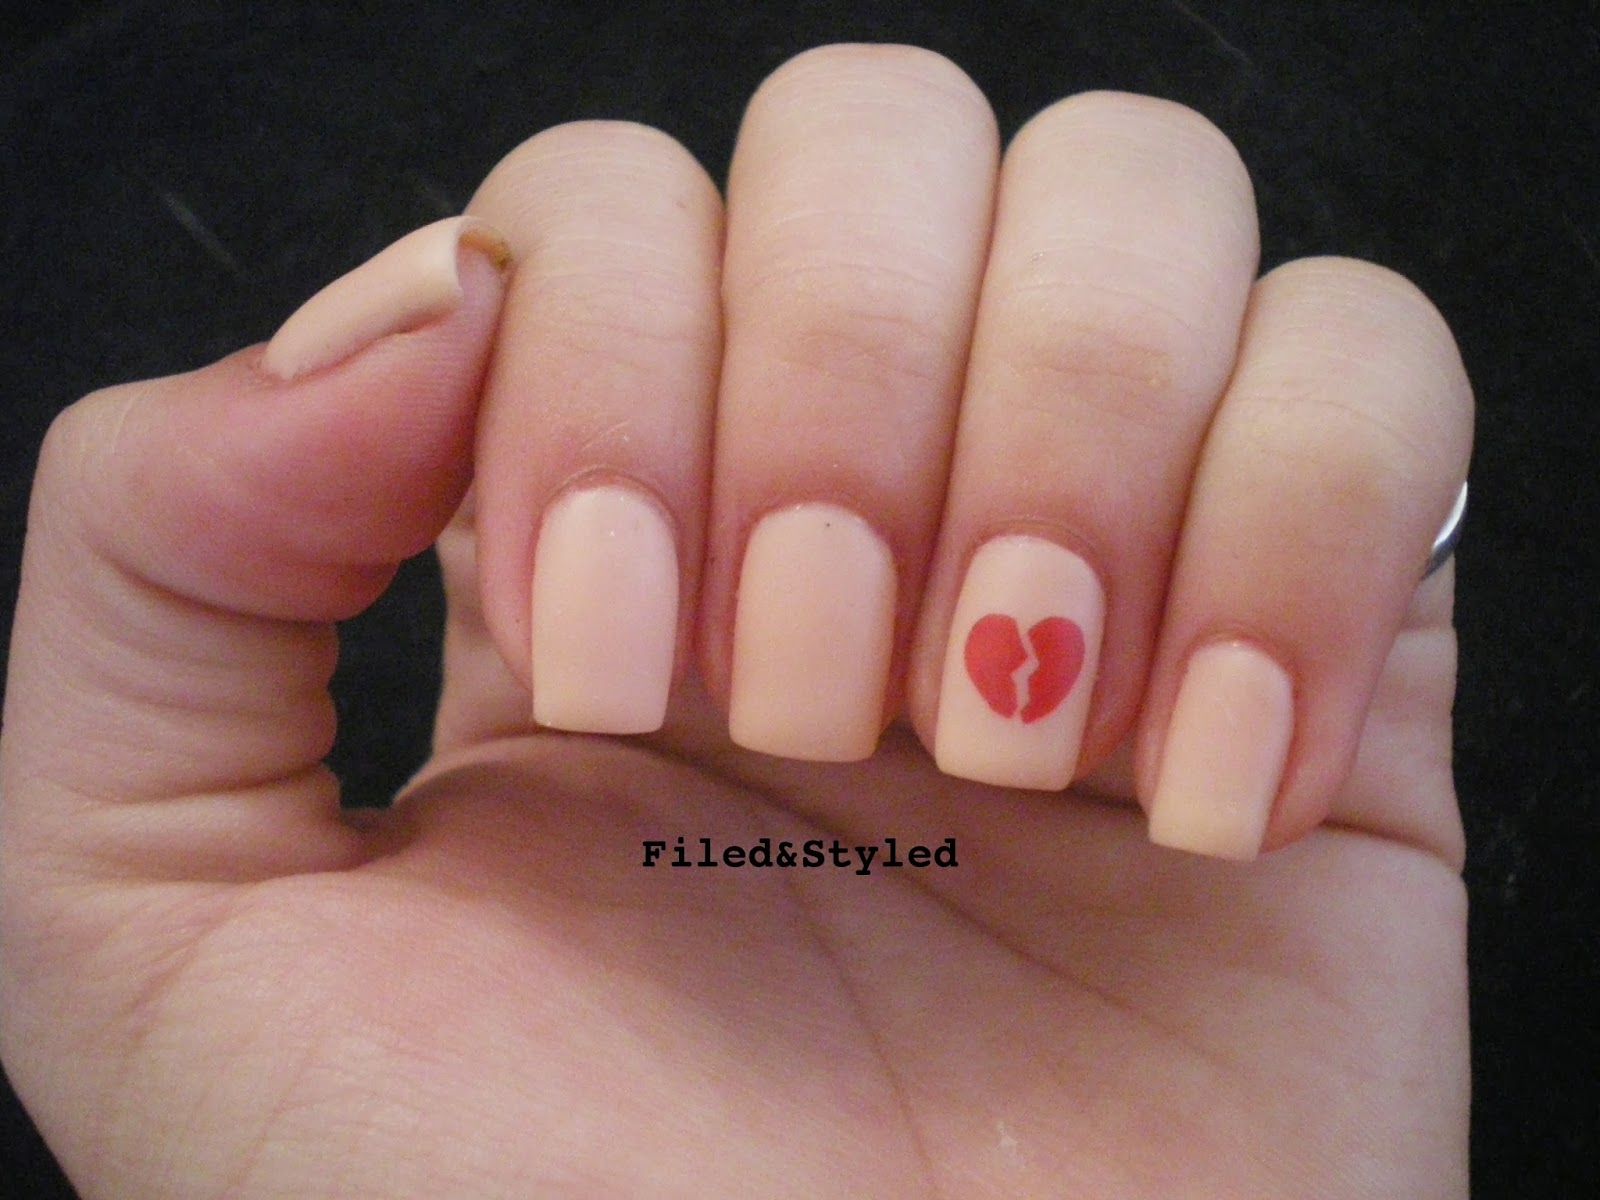 31dc2013 Delicate Nails | Filed & Styled Filed & Styled: 31dc2013 ...